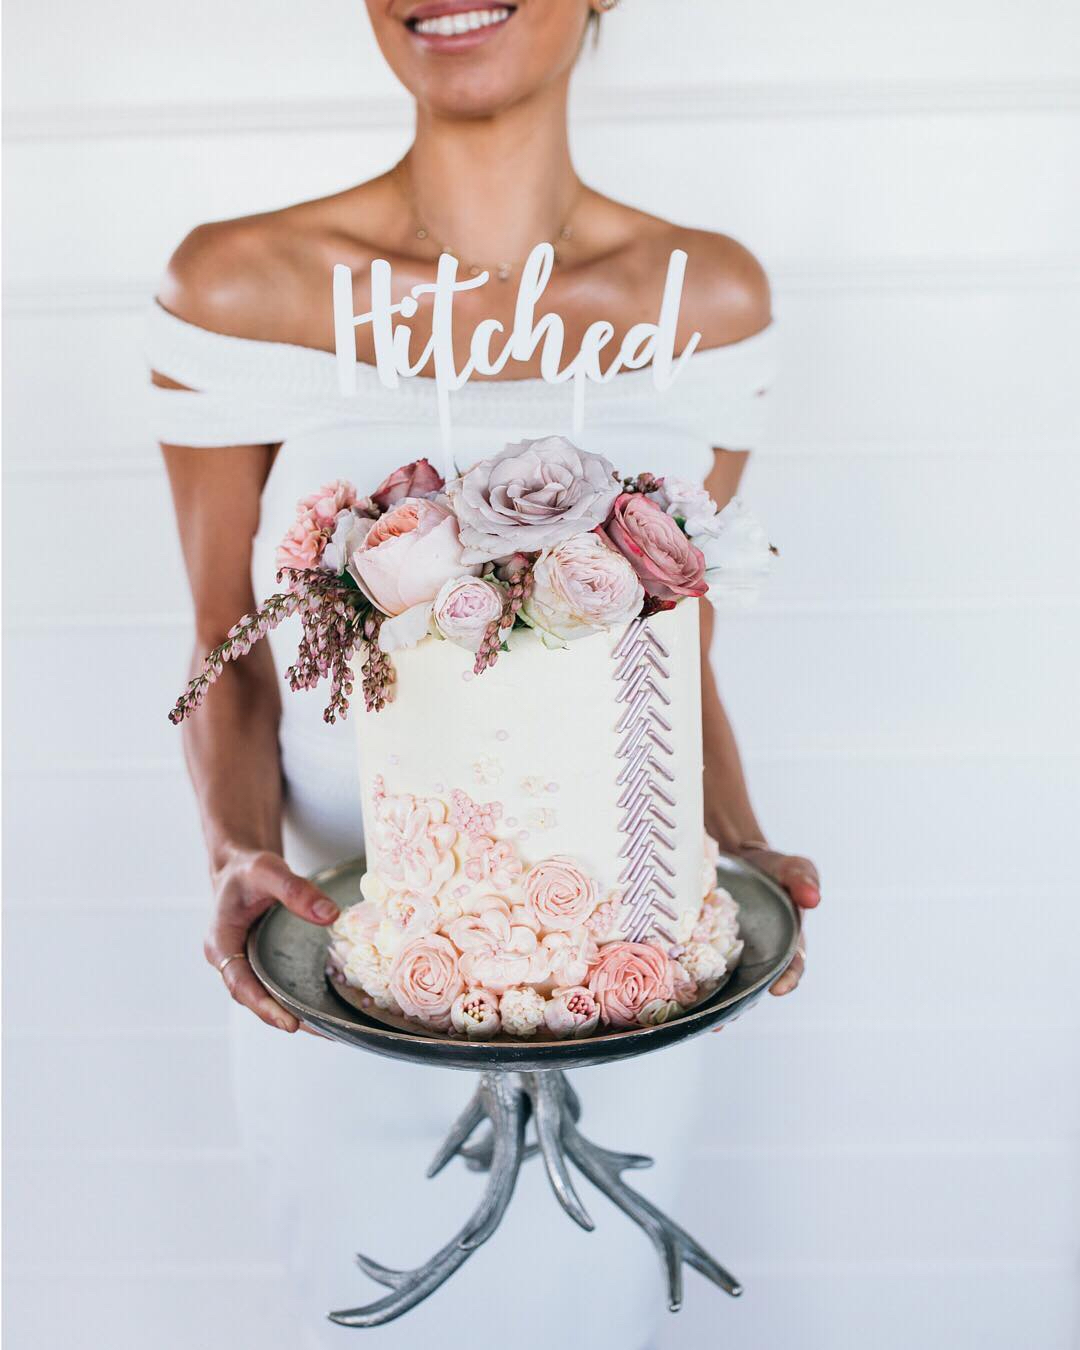 hitched bride wedding cake